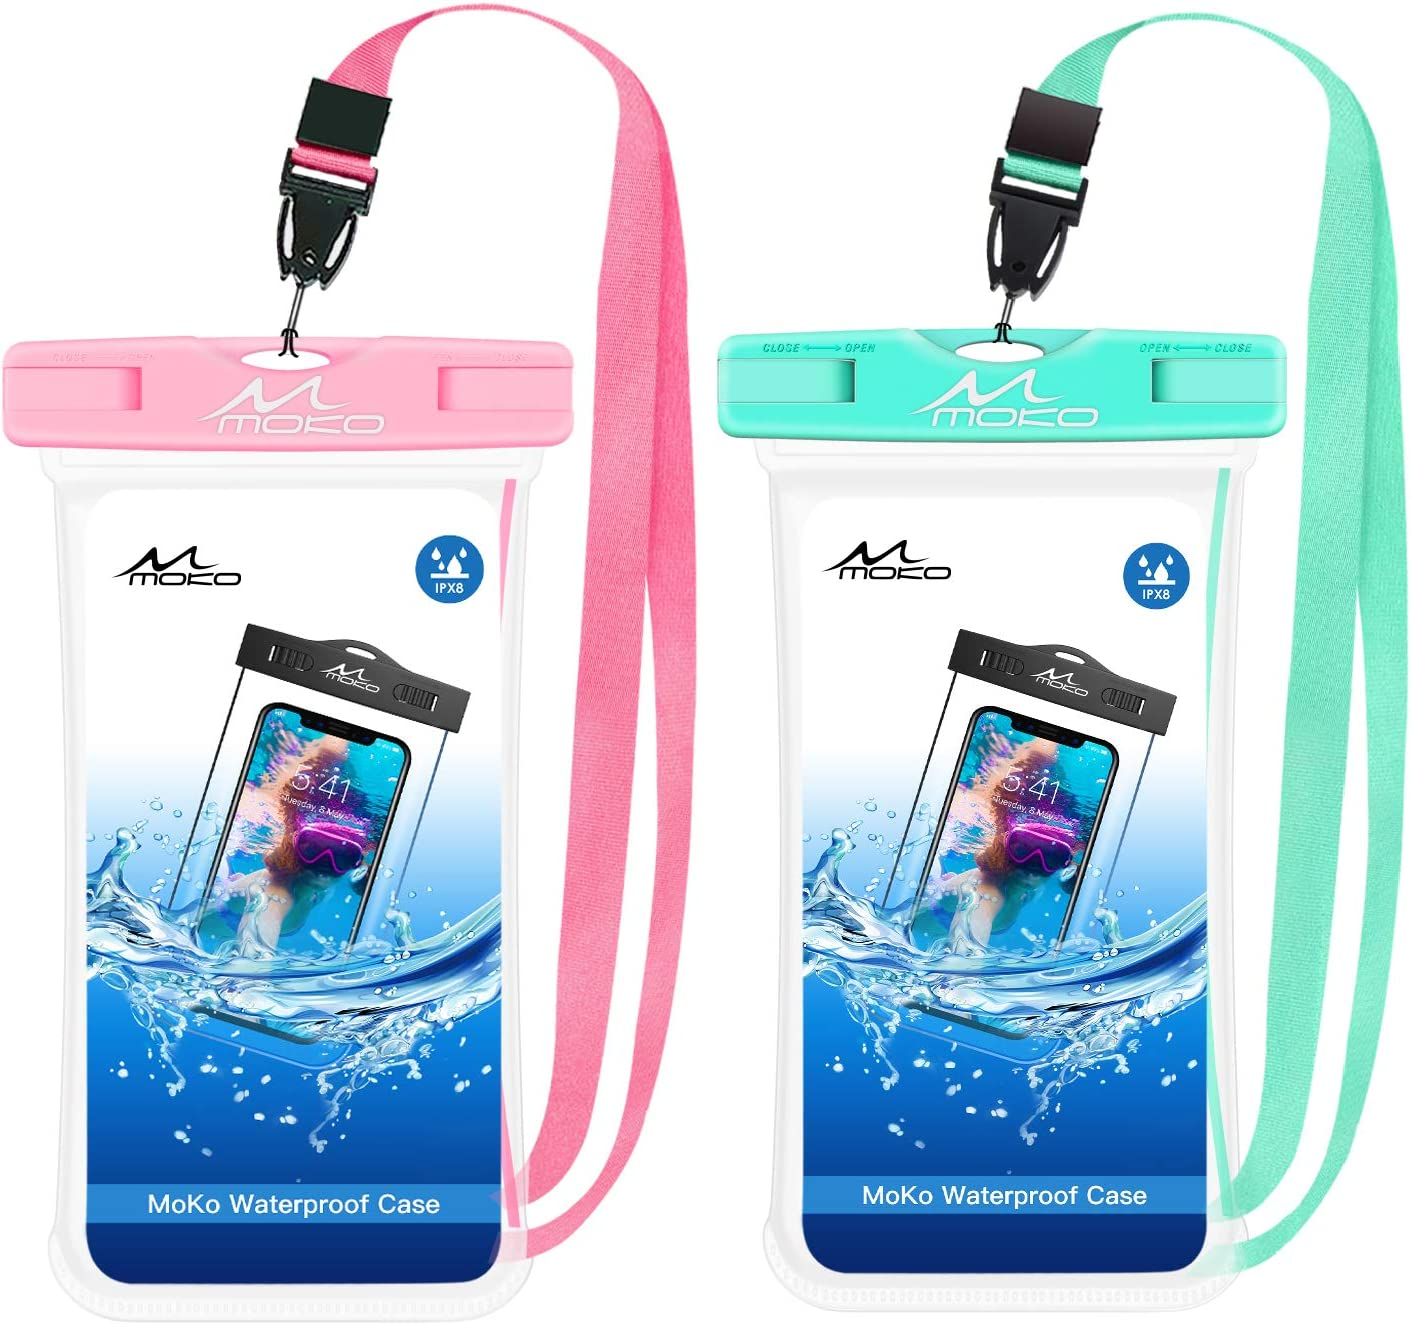 MoKo Waterproof Phone Pouch [2 Pack], Underwater Phone Case Dry Bag with Lanyard Compatible with iPhone 13/13 Pro Max/iPhone 12/12 Pro Max/11 Pro Max, X/Xr/Xs Max 8, Samsung Note 10, S20/S21/S10/S9